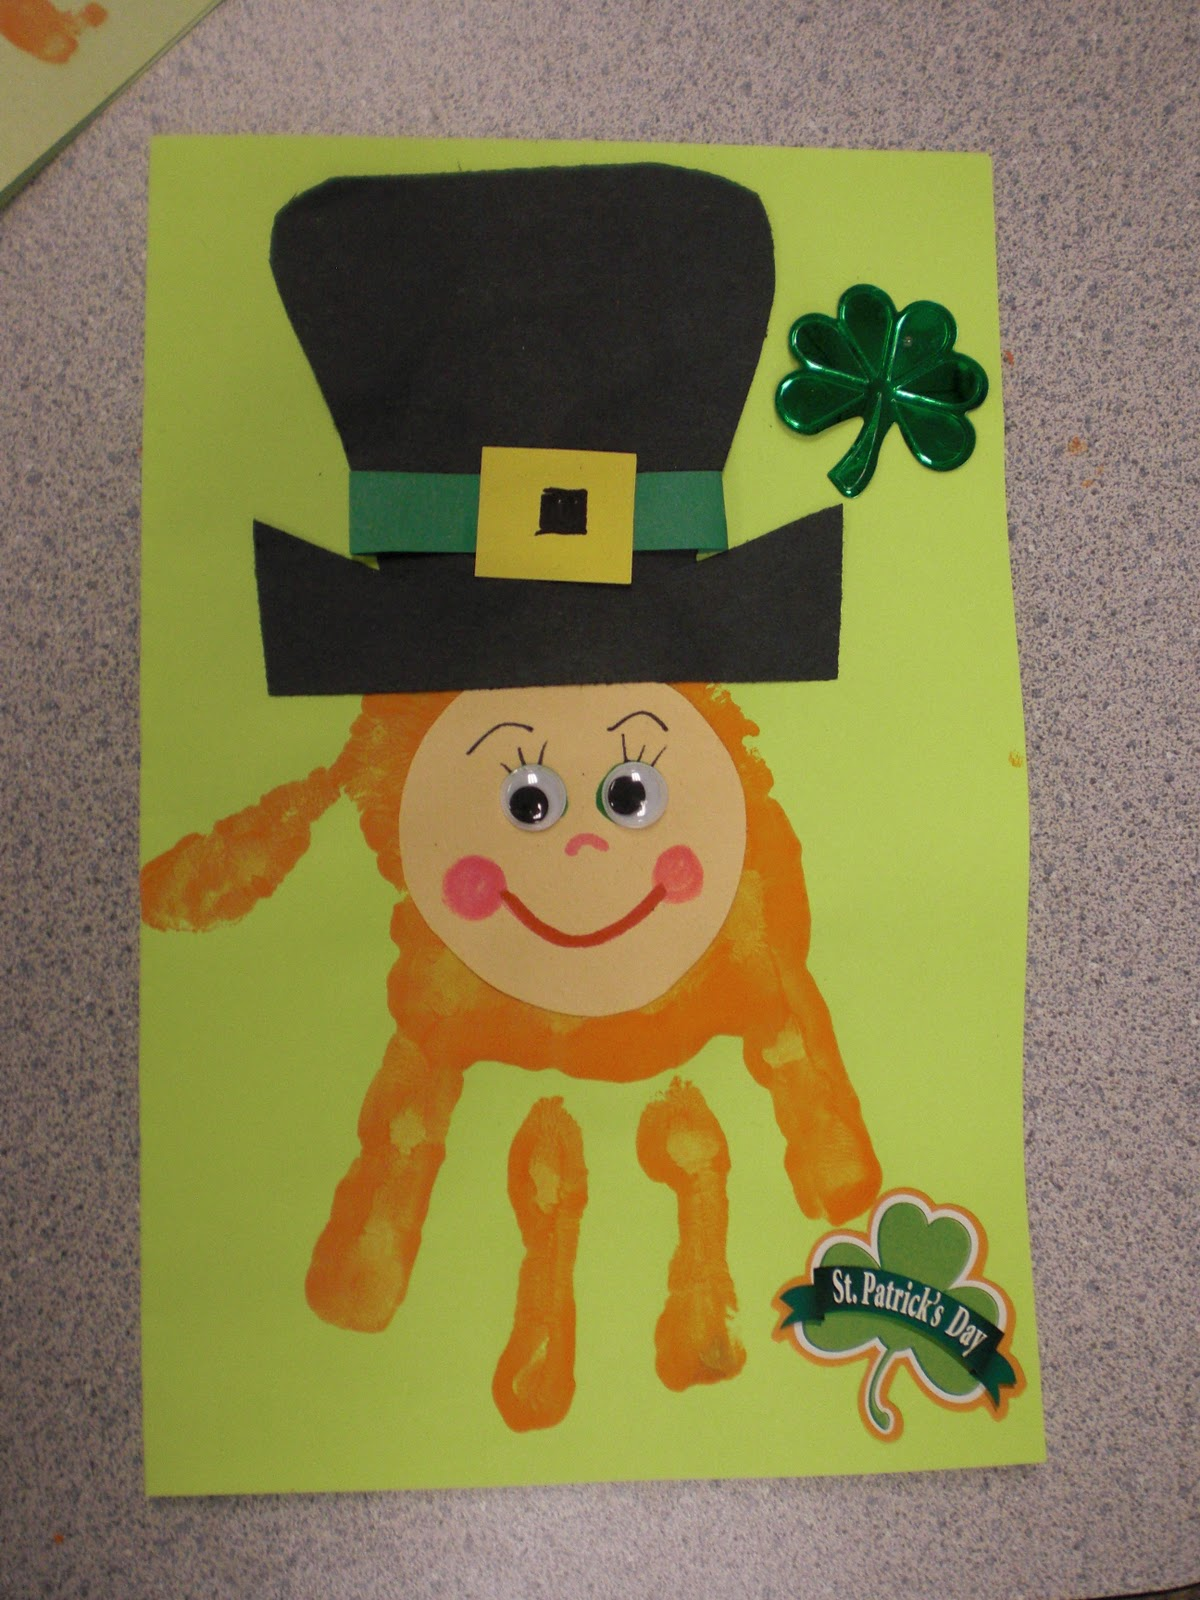 March arts and crafts - Thursday March 17 2011